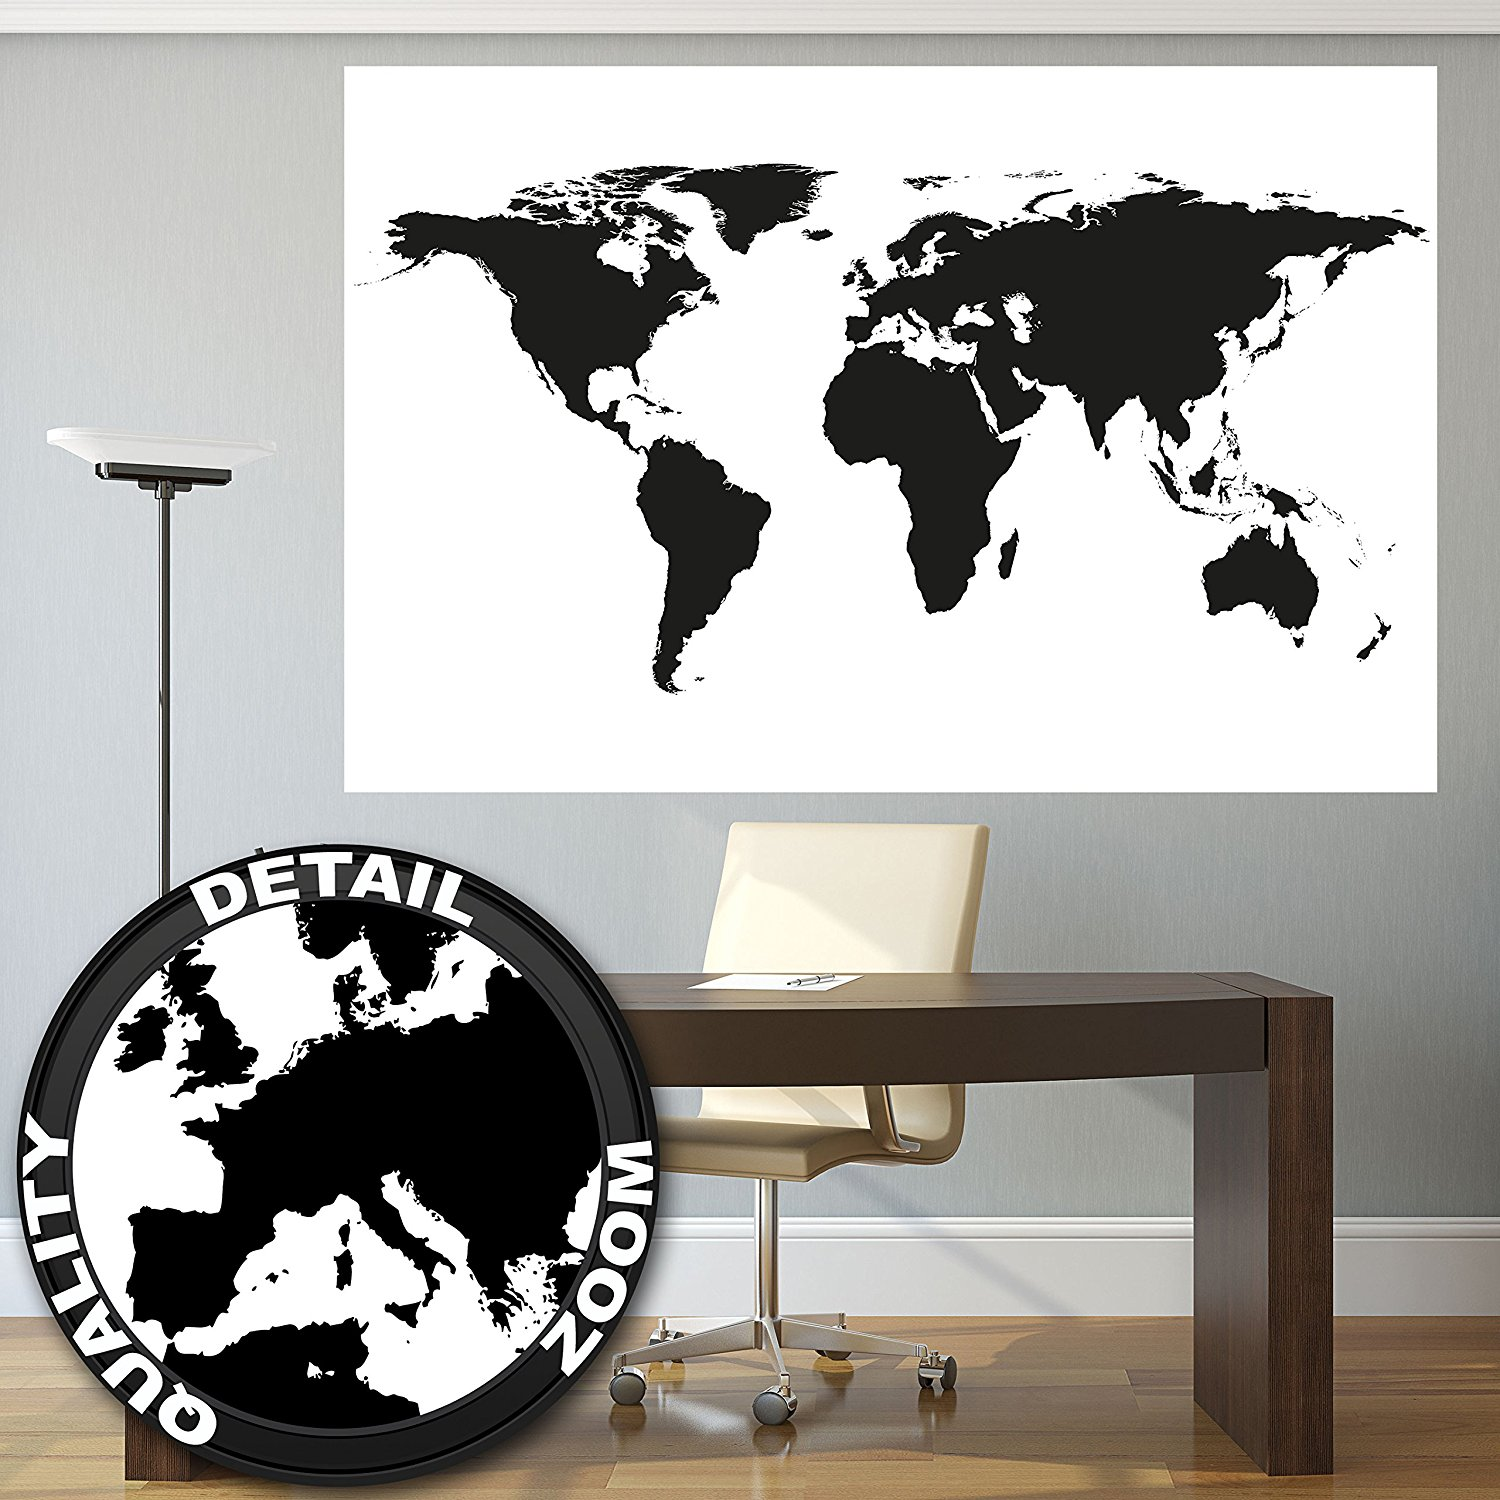 Buy great art xxl poster world map photo wallpaper vintage retro recommended for you great art xxl poster world map gumiabroncs Choice Image